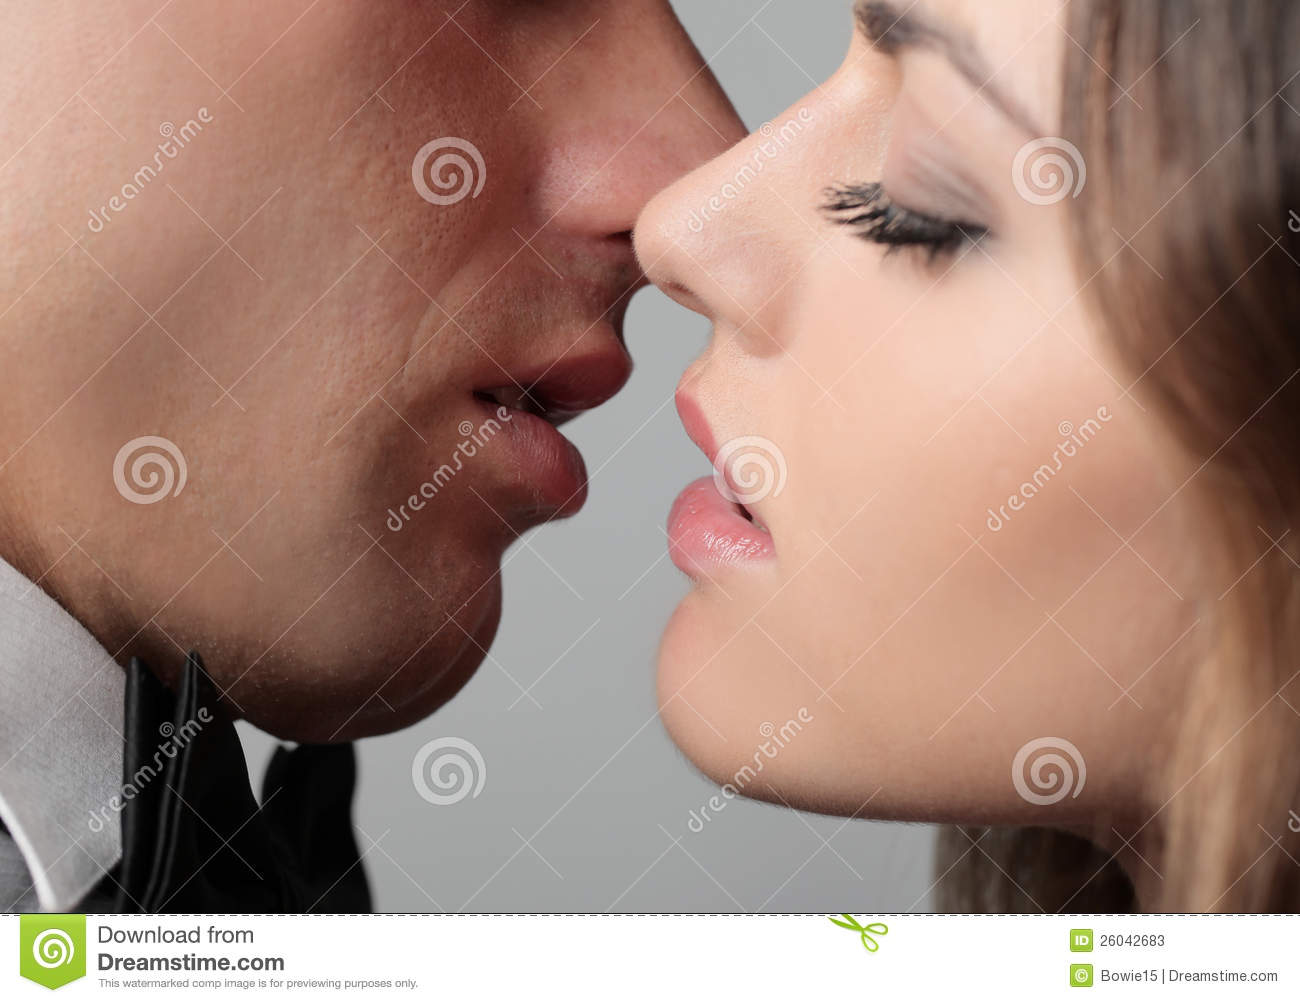 Soft Kiss Stock Image Image Of Love, Touch, Girl -8758